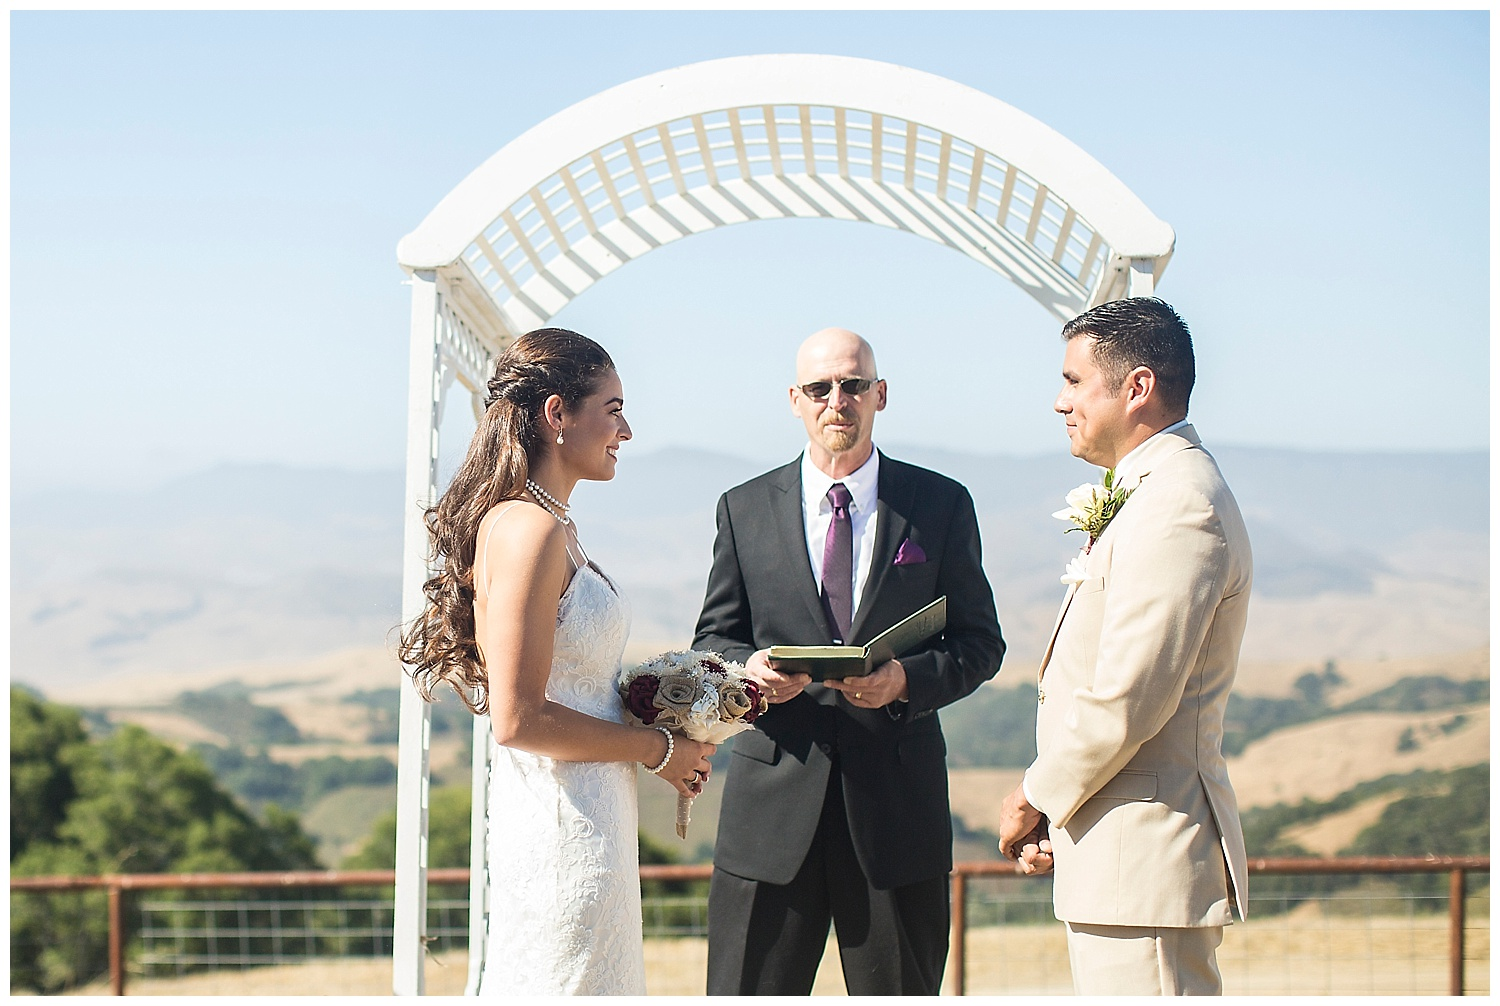 a_Ryan+Allyson_Renoda Campbell Photography_San Luis Obispo Wedding Photographer-9450.jpg